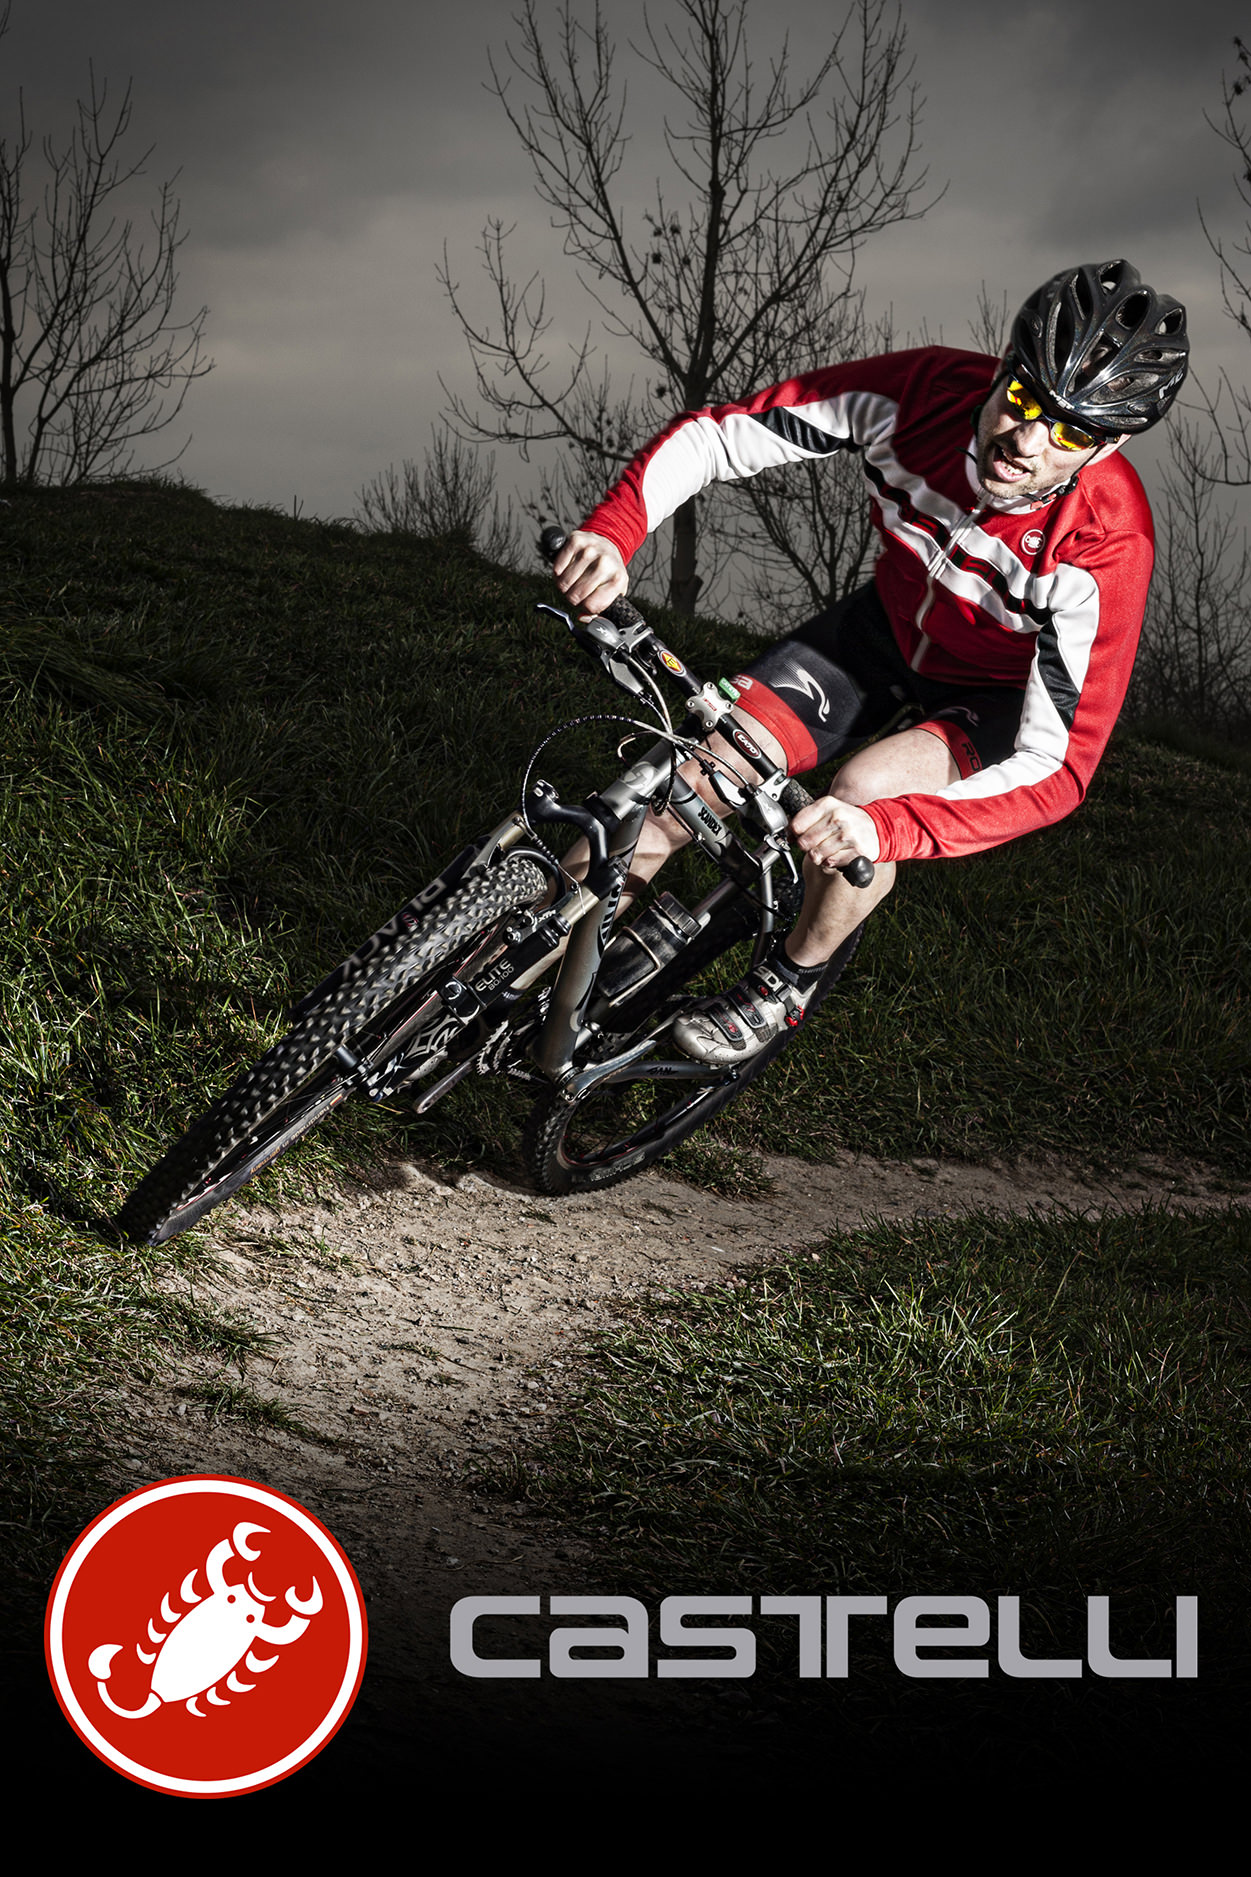 Martijn_Verbaal Visuele Communicatie_Mountainbiker